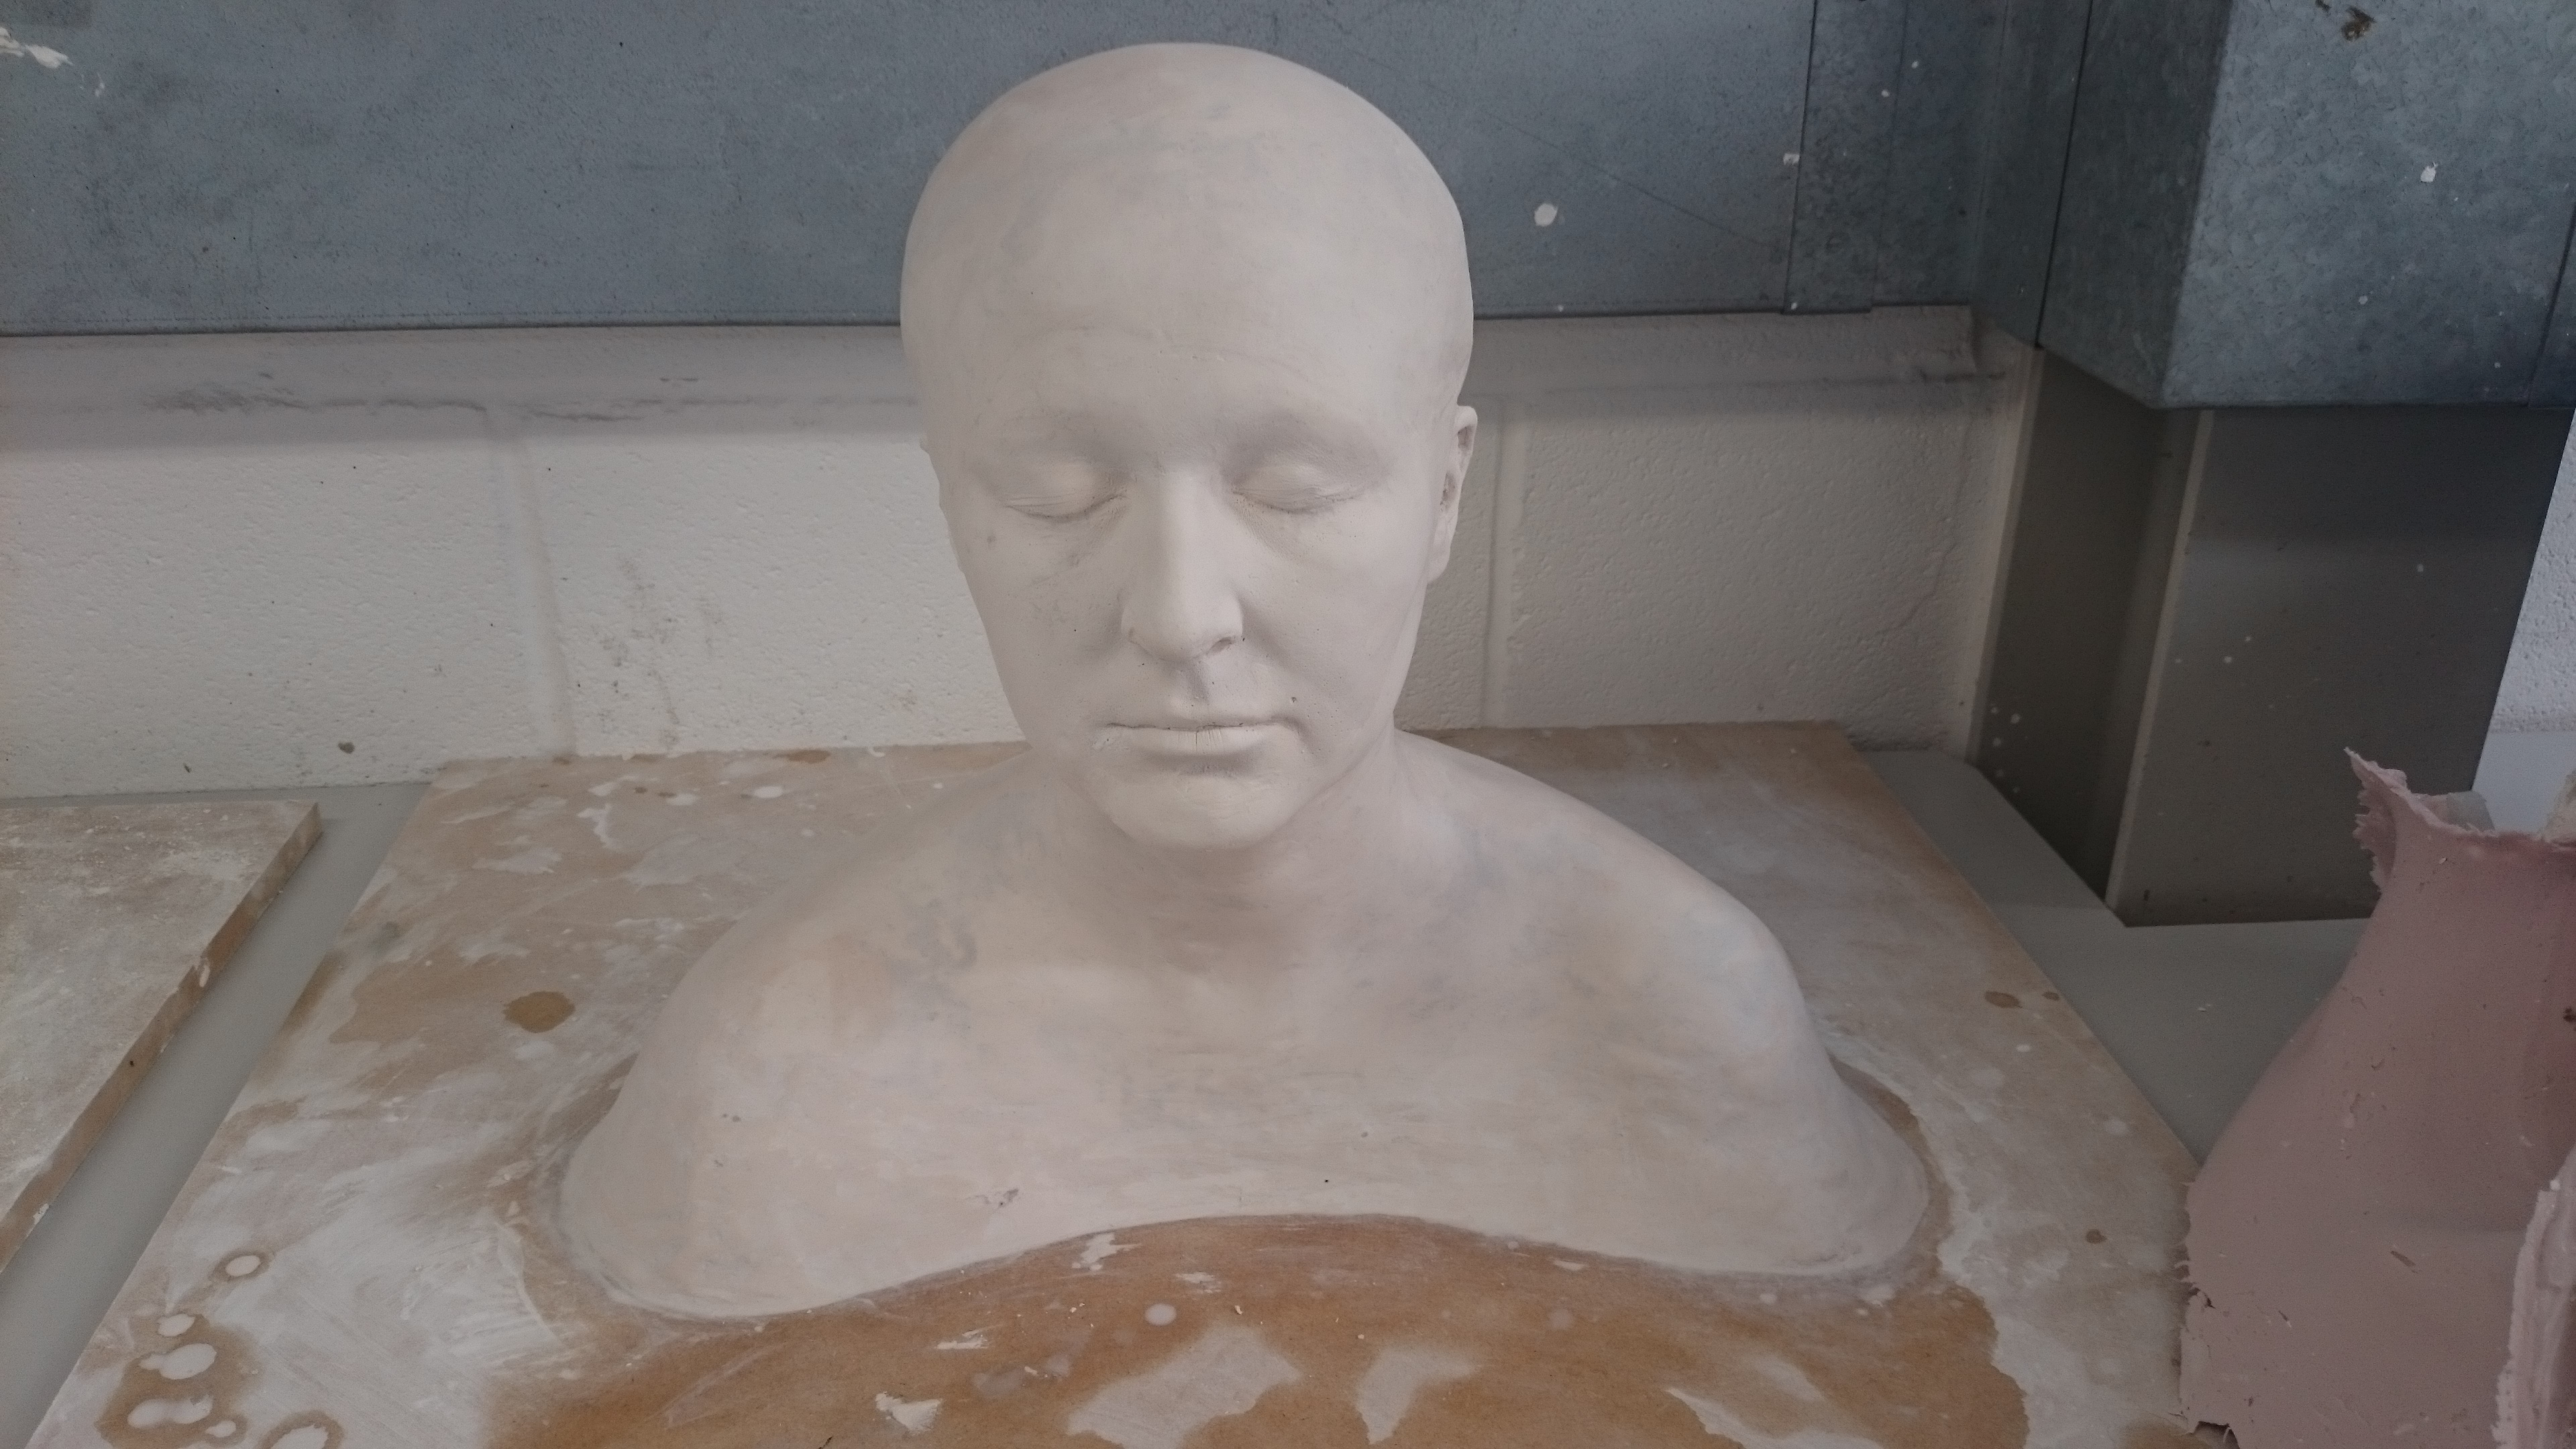 Cleaned up plaster life cast